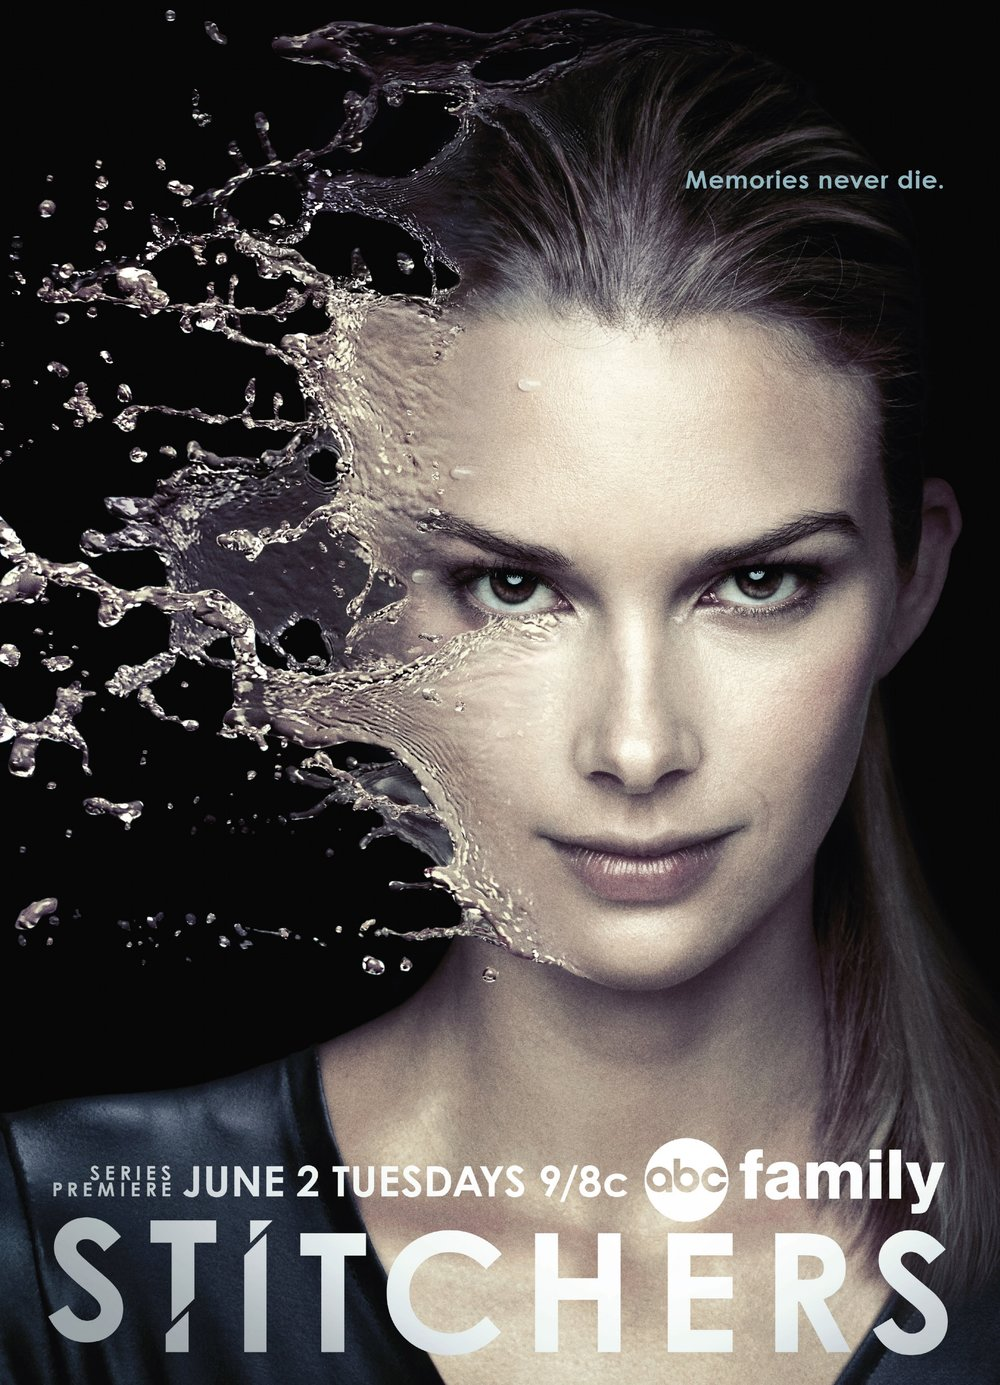 4145_ABC_Stitchers_Waterface_Internal_Poster.jpg